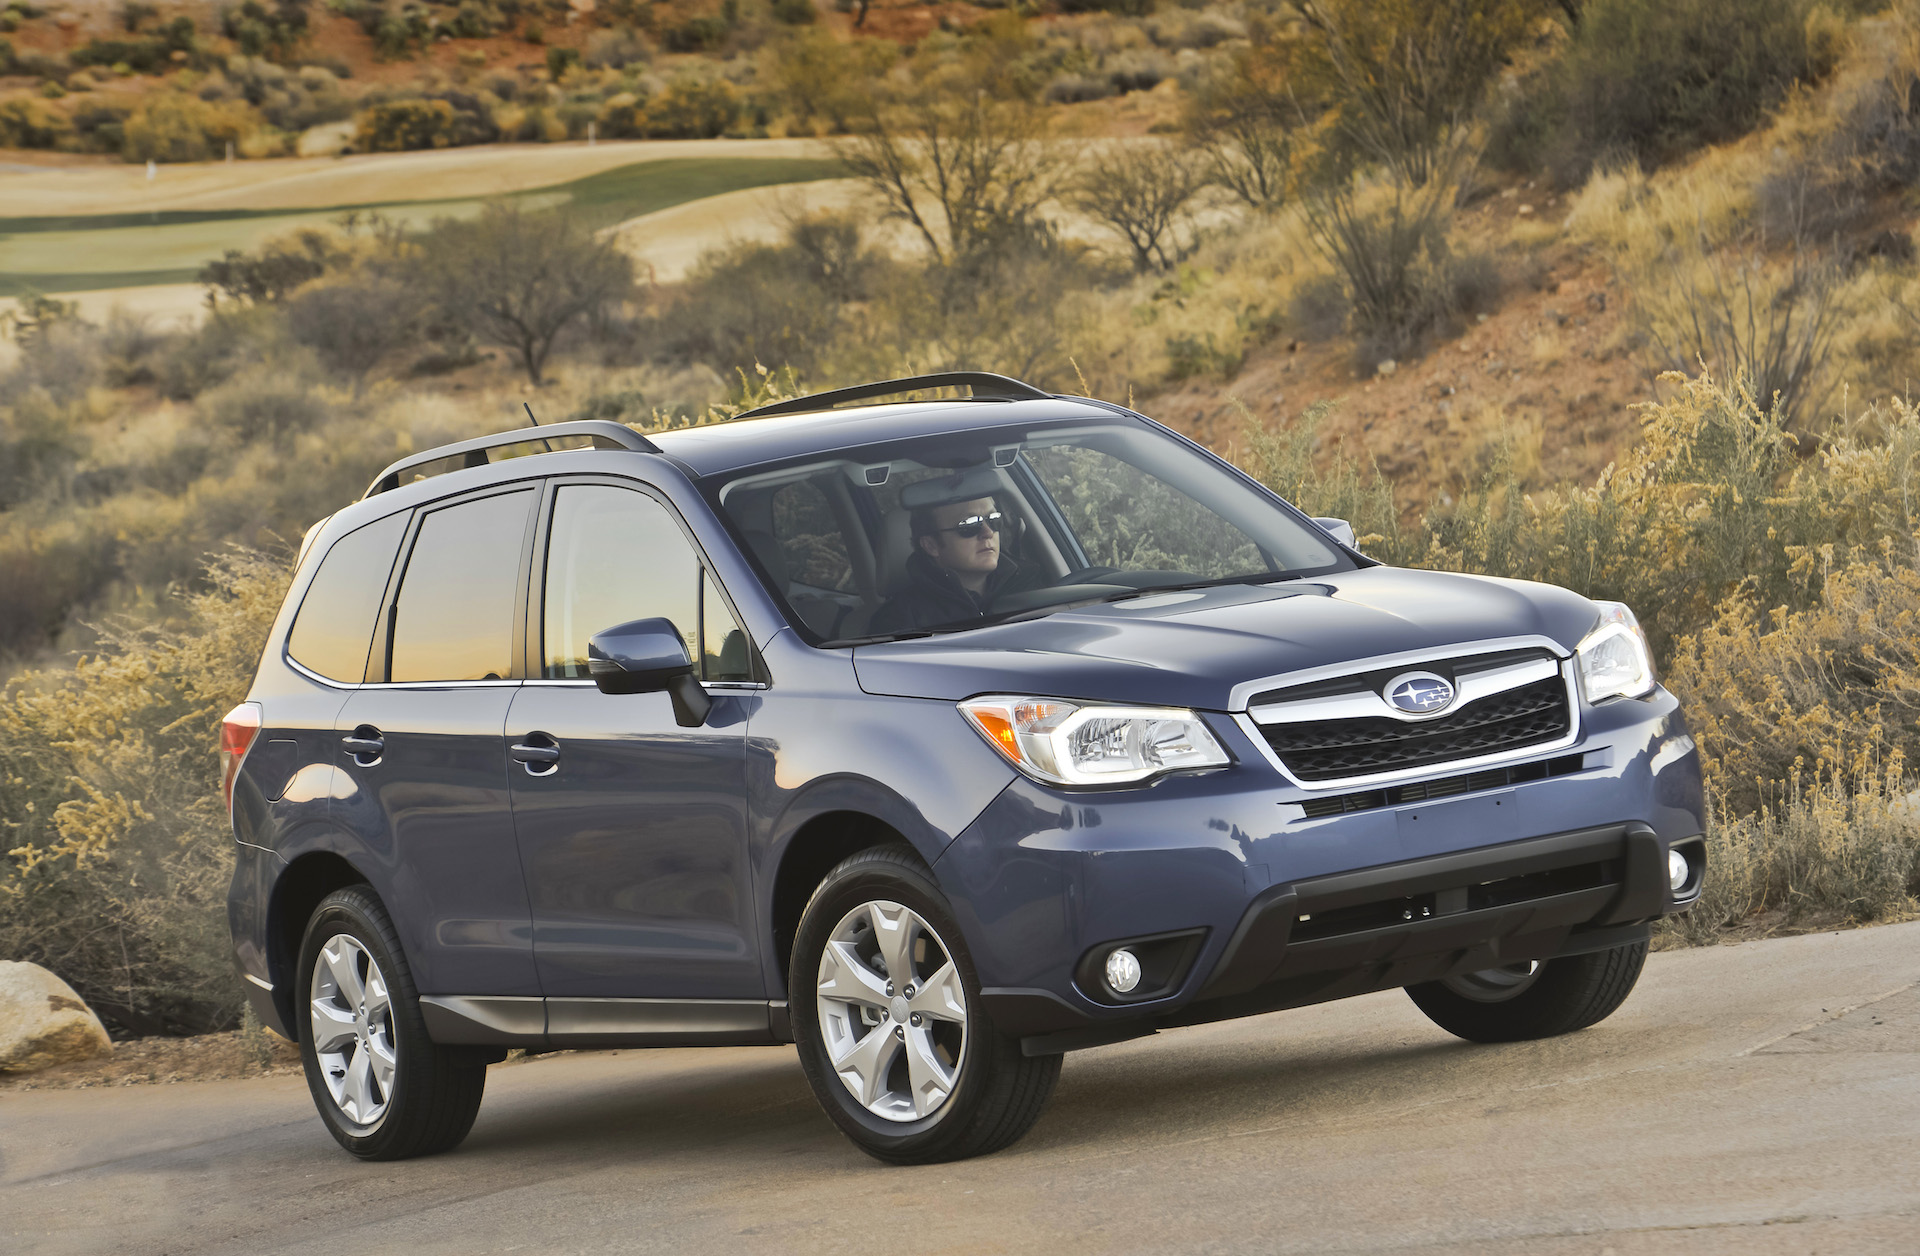 Kia El Paso >> New and Used Subaru Forester: Prices, Photos, Reviews ...